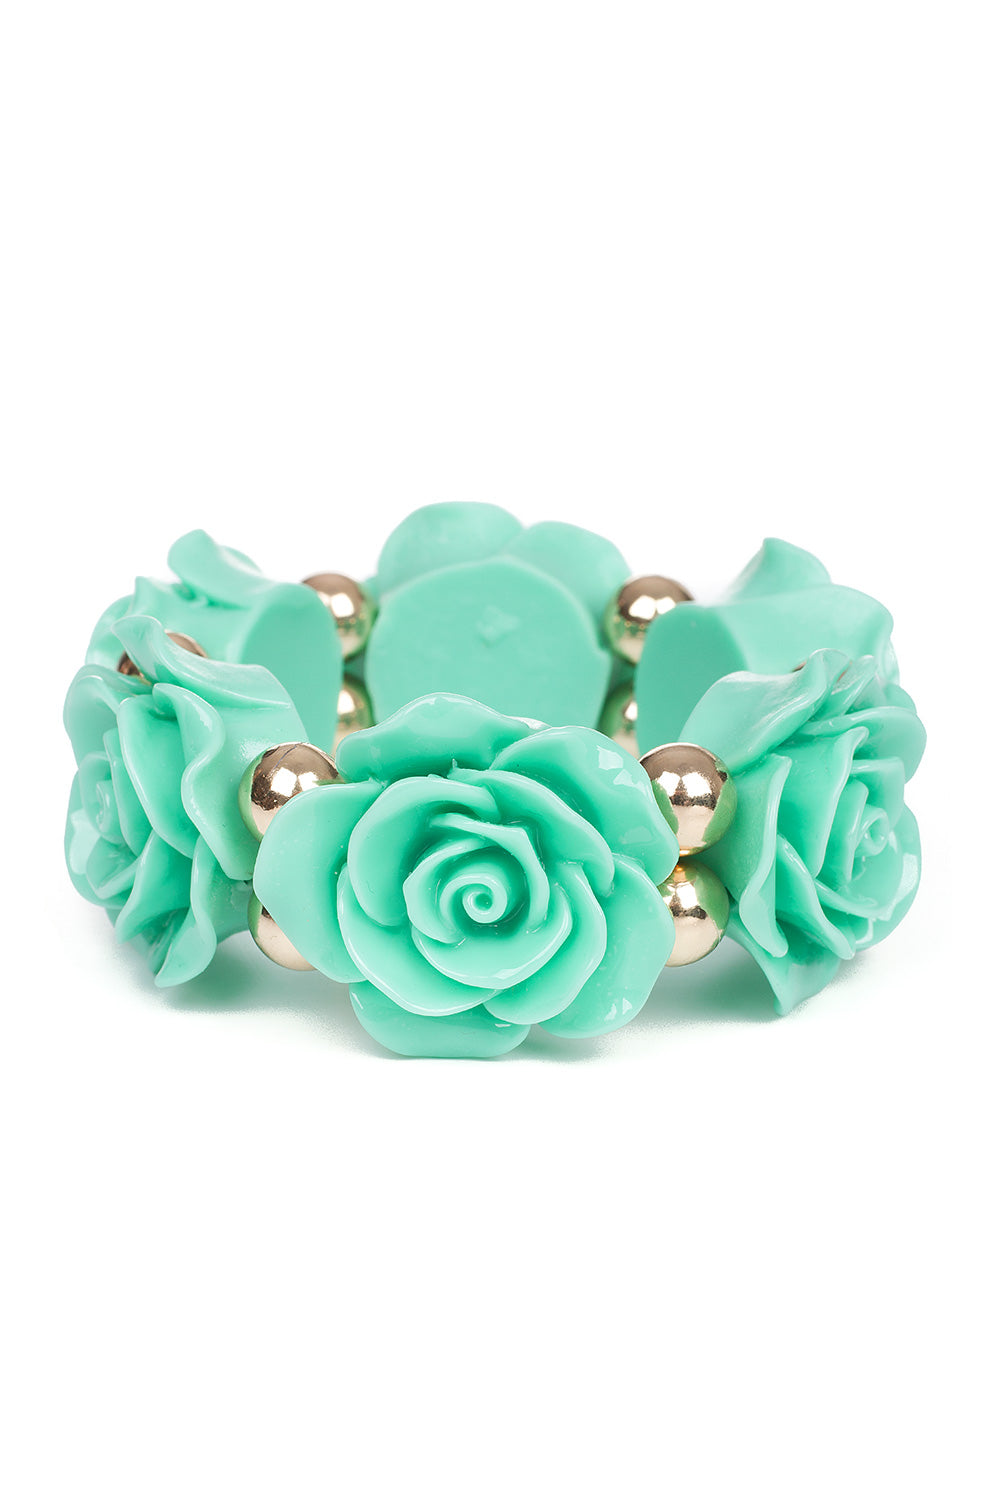 Type 1 Bouquet Bracelet